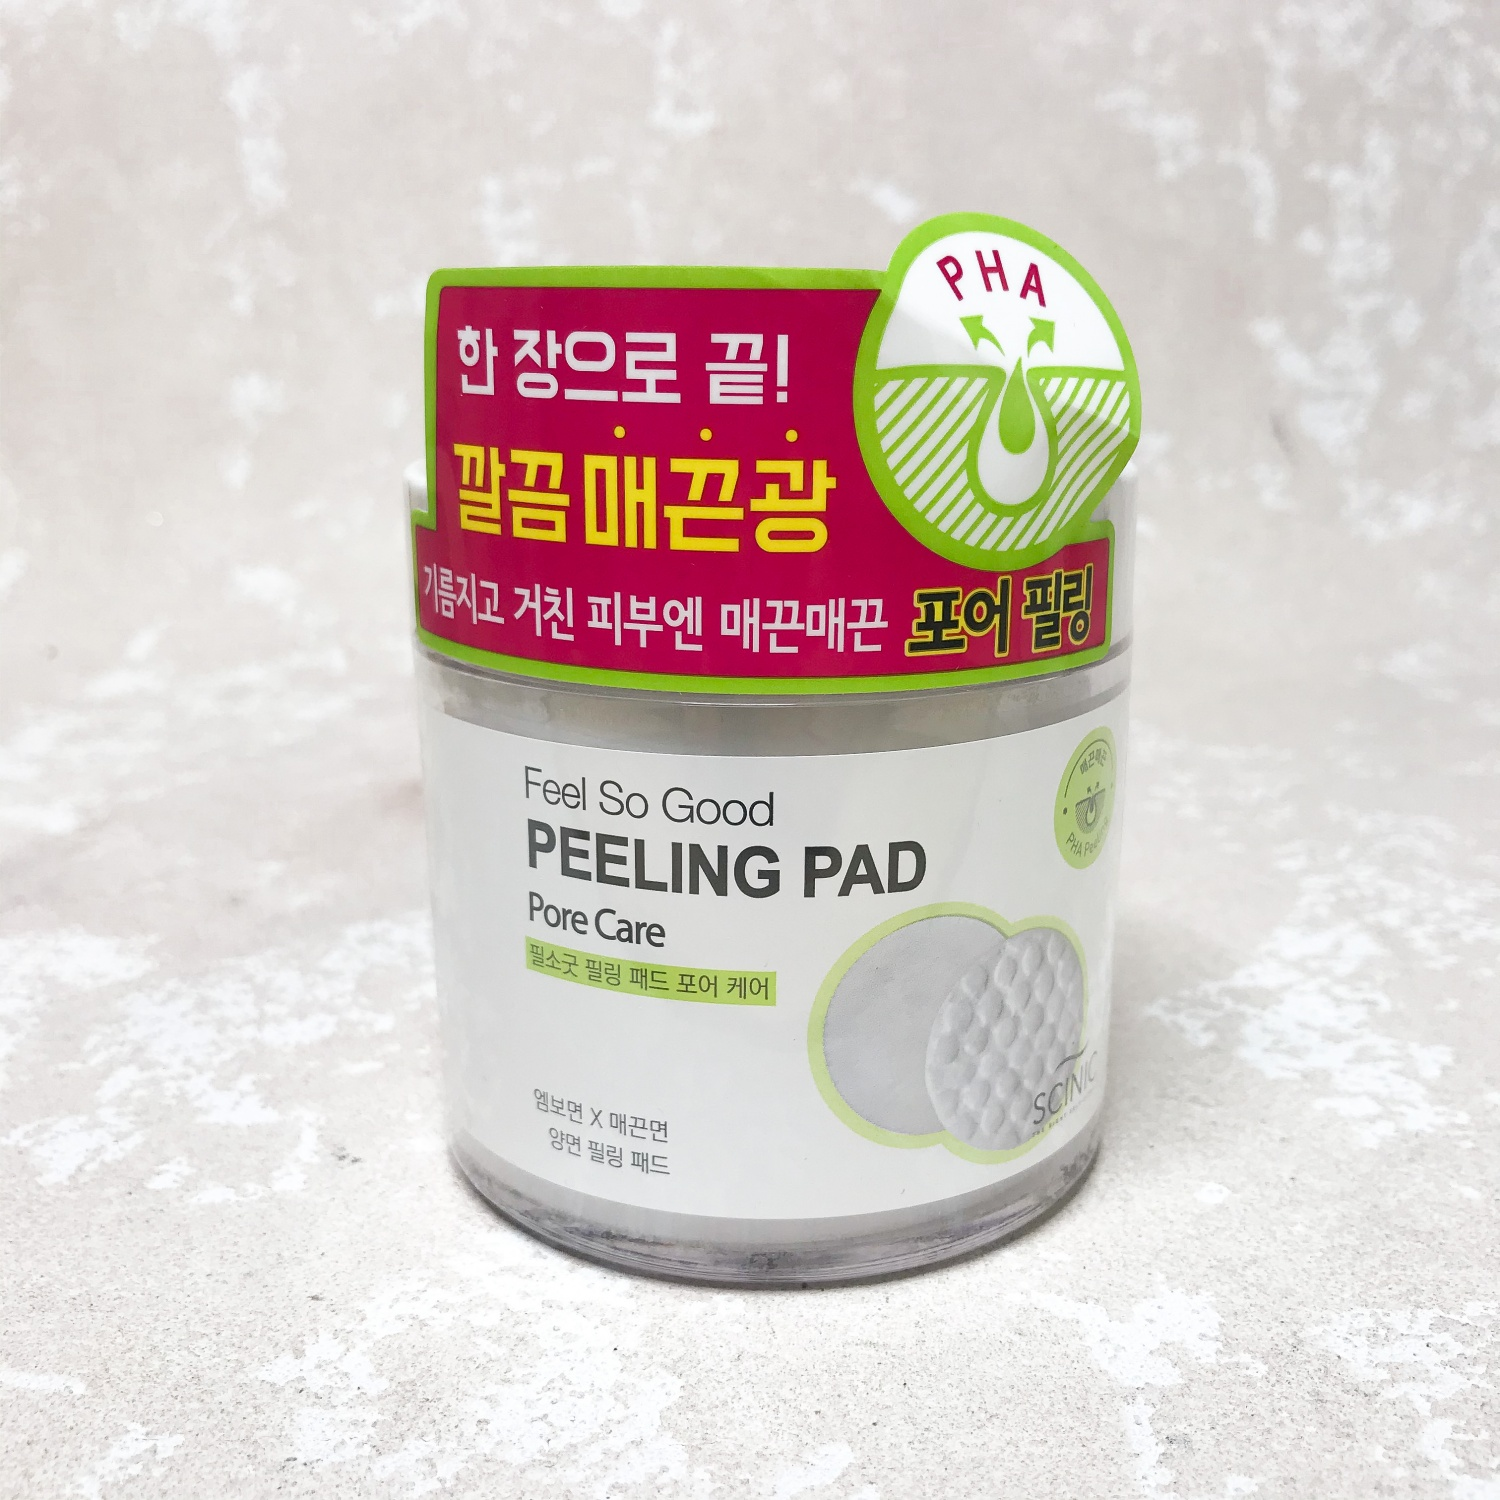 Scinic Feel So Good Peeling Pad Pore Care